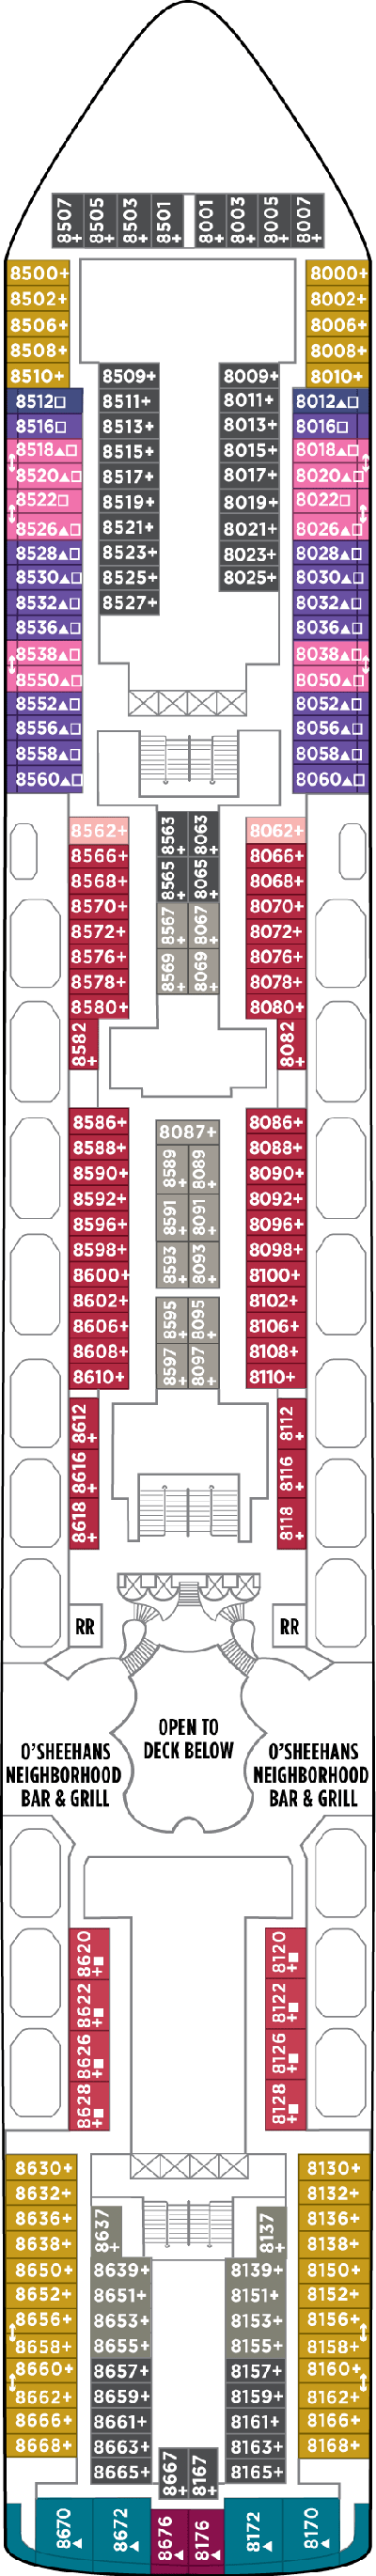 Norwegian Star Deck 8 layout